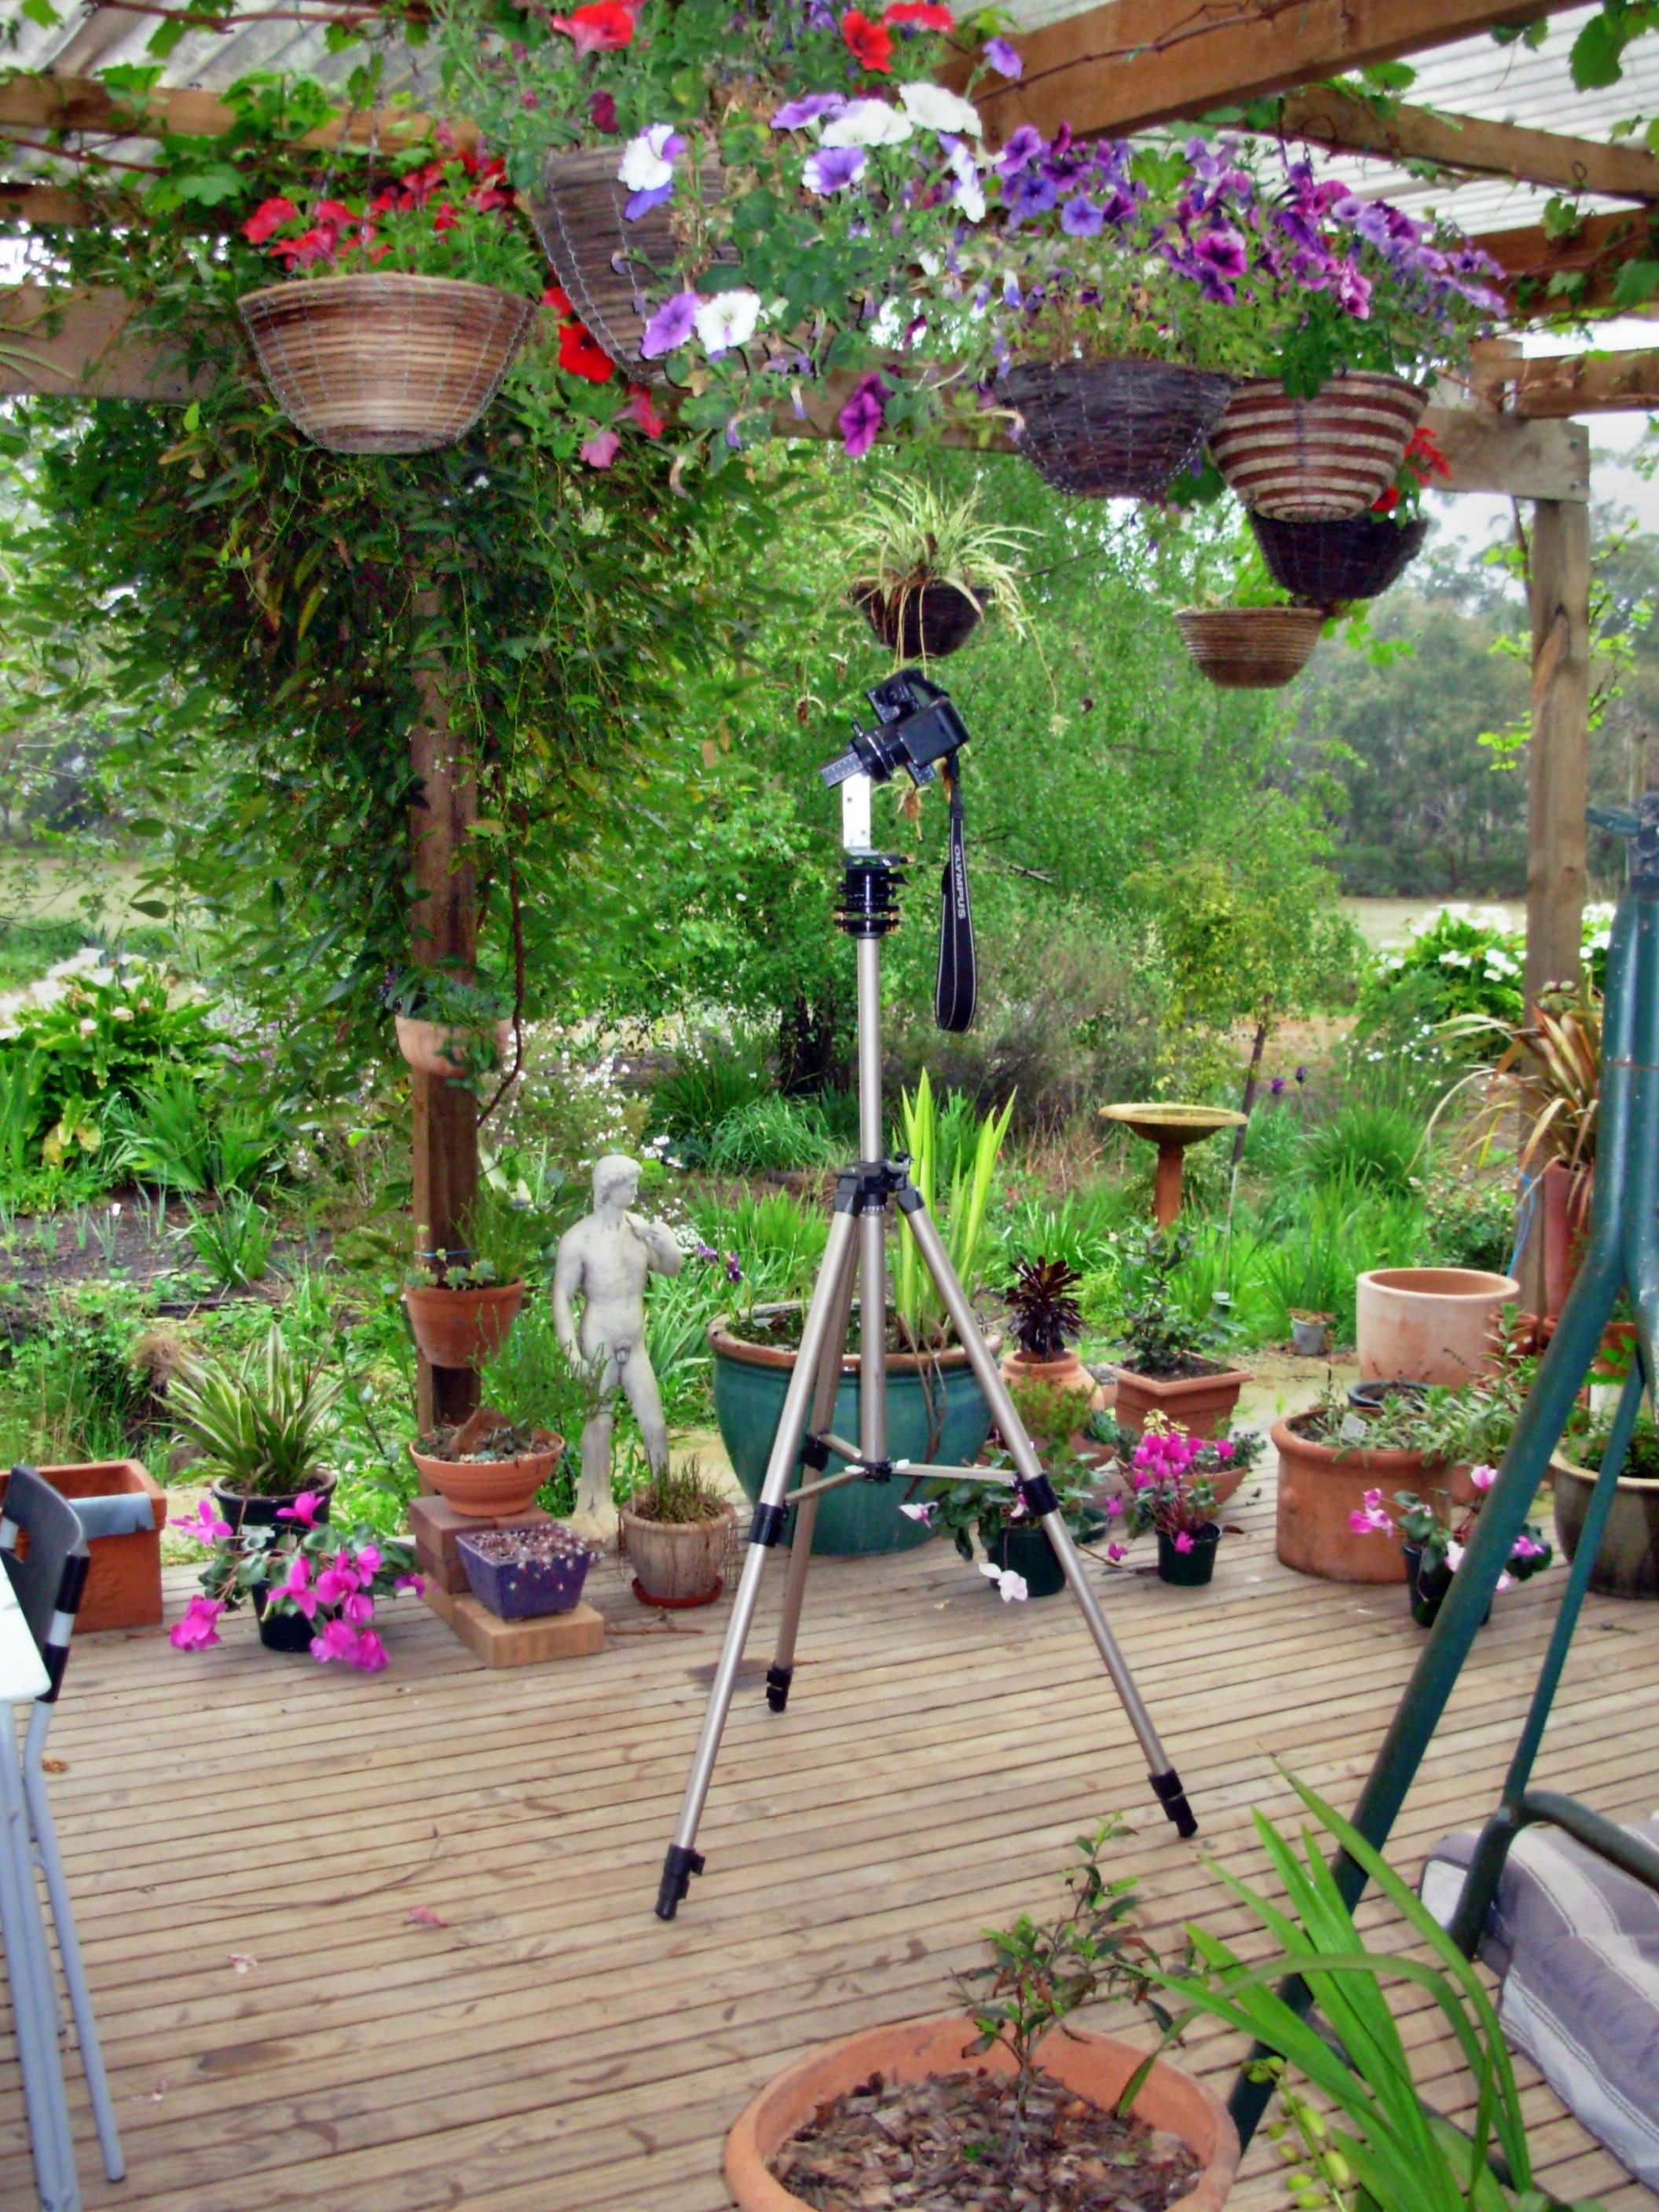 Camera-on-tripod.jpeg